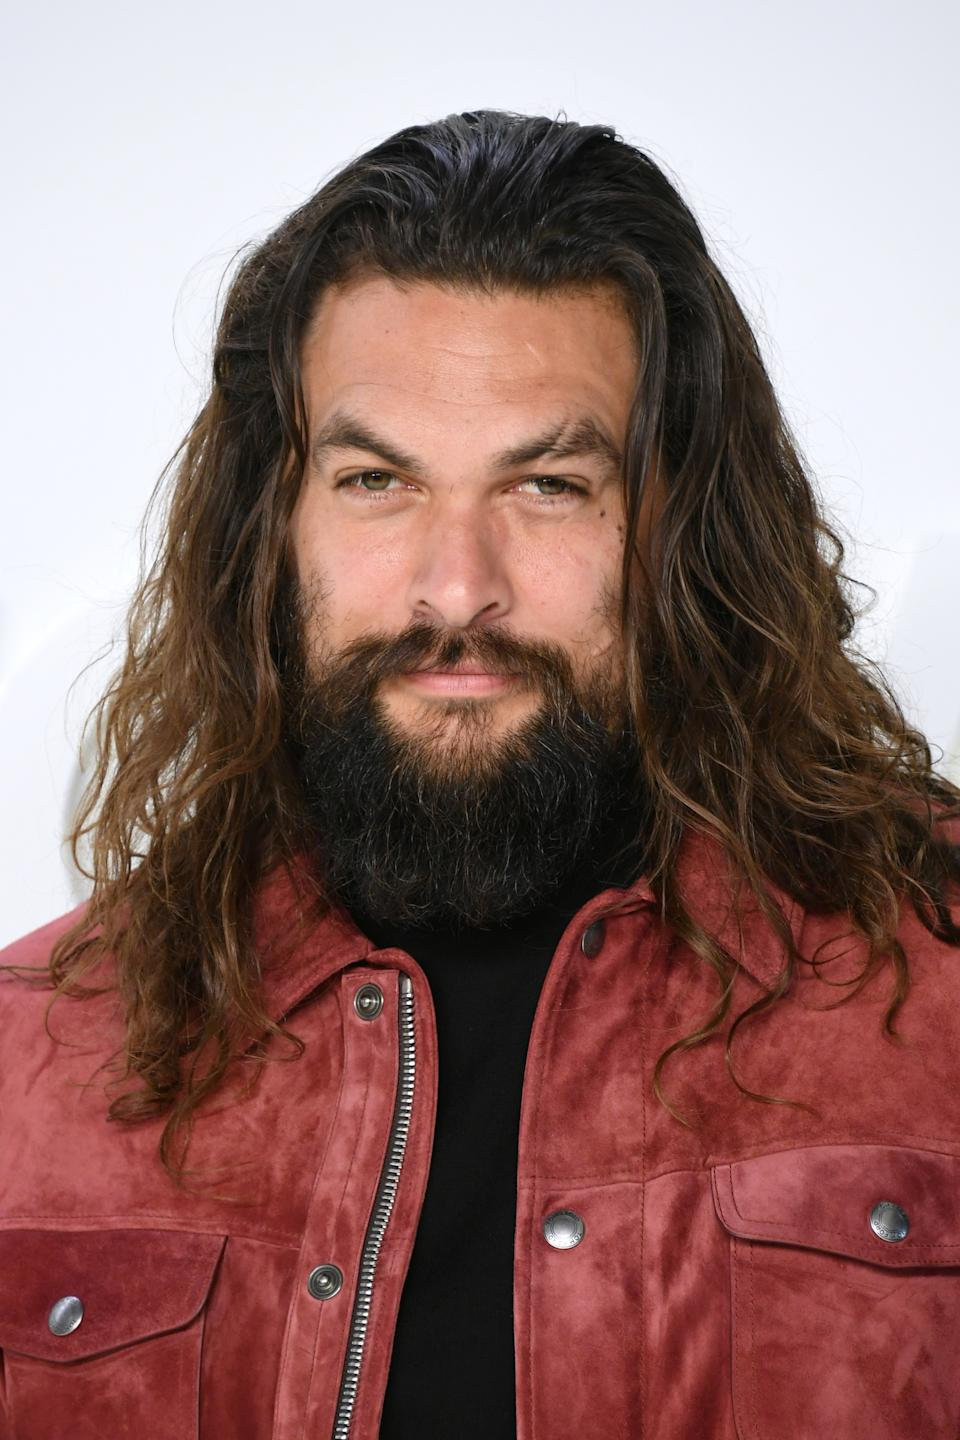 HOLLYWOOD, CALIFORNIA - FEBRUARY 07: Actor Jason Momoa  attends the Tom Ford AW20 Show at Milk Studios on February 07, 2020 in Hollywood, California. (Photo by Mike Coppola/FilmMagic)